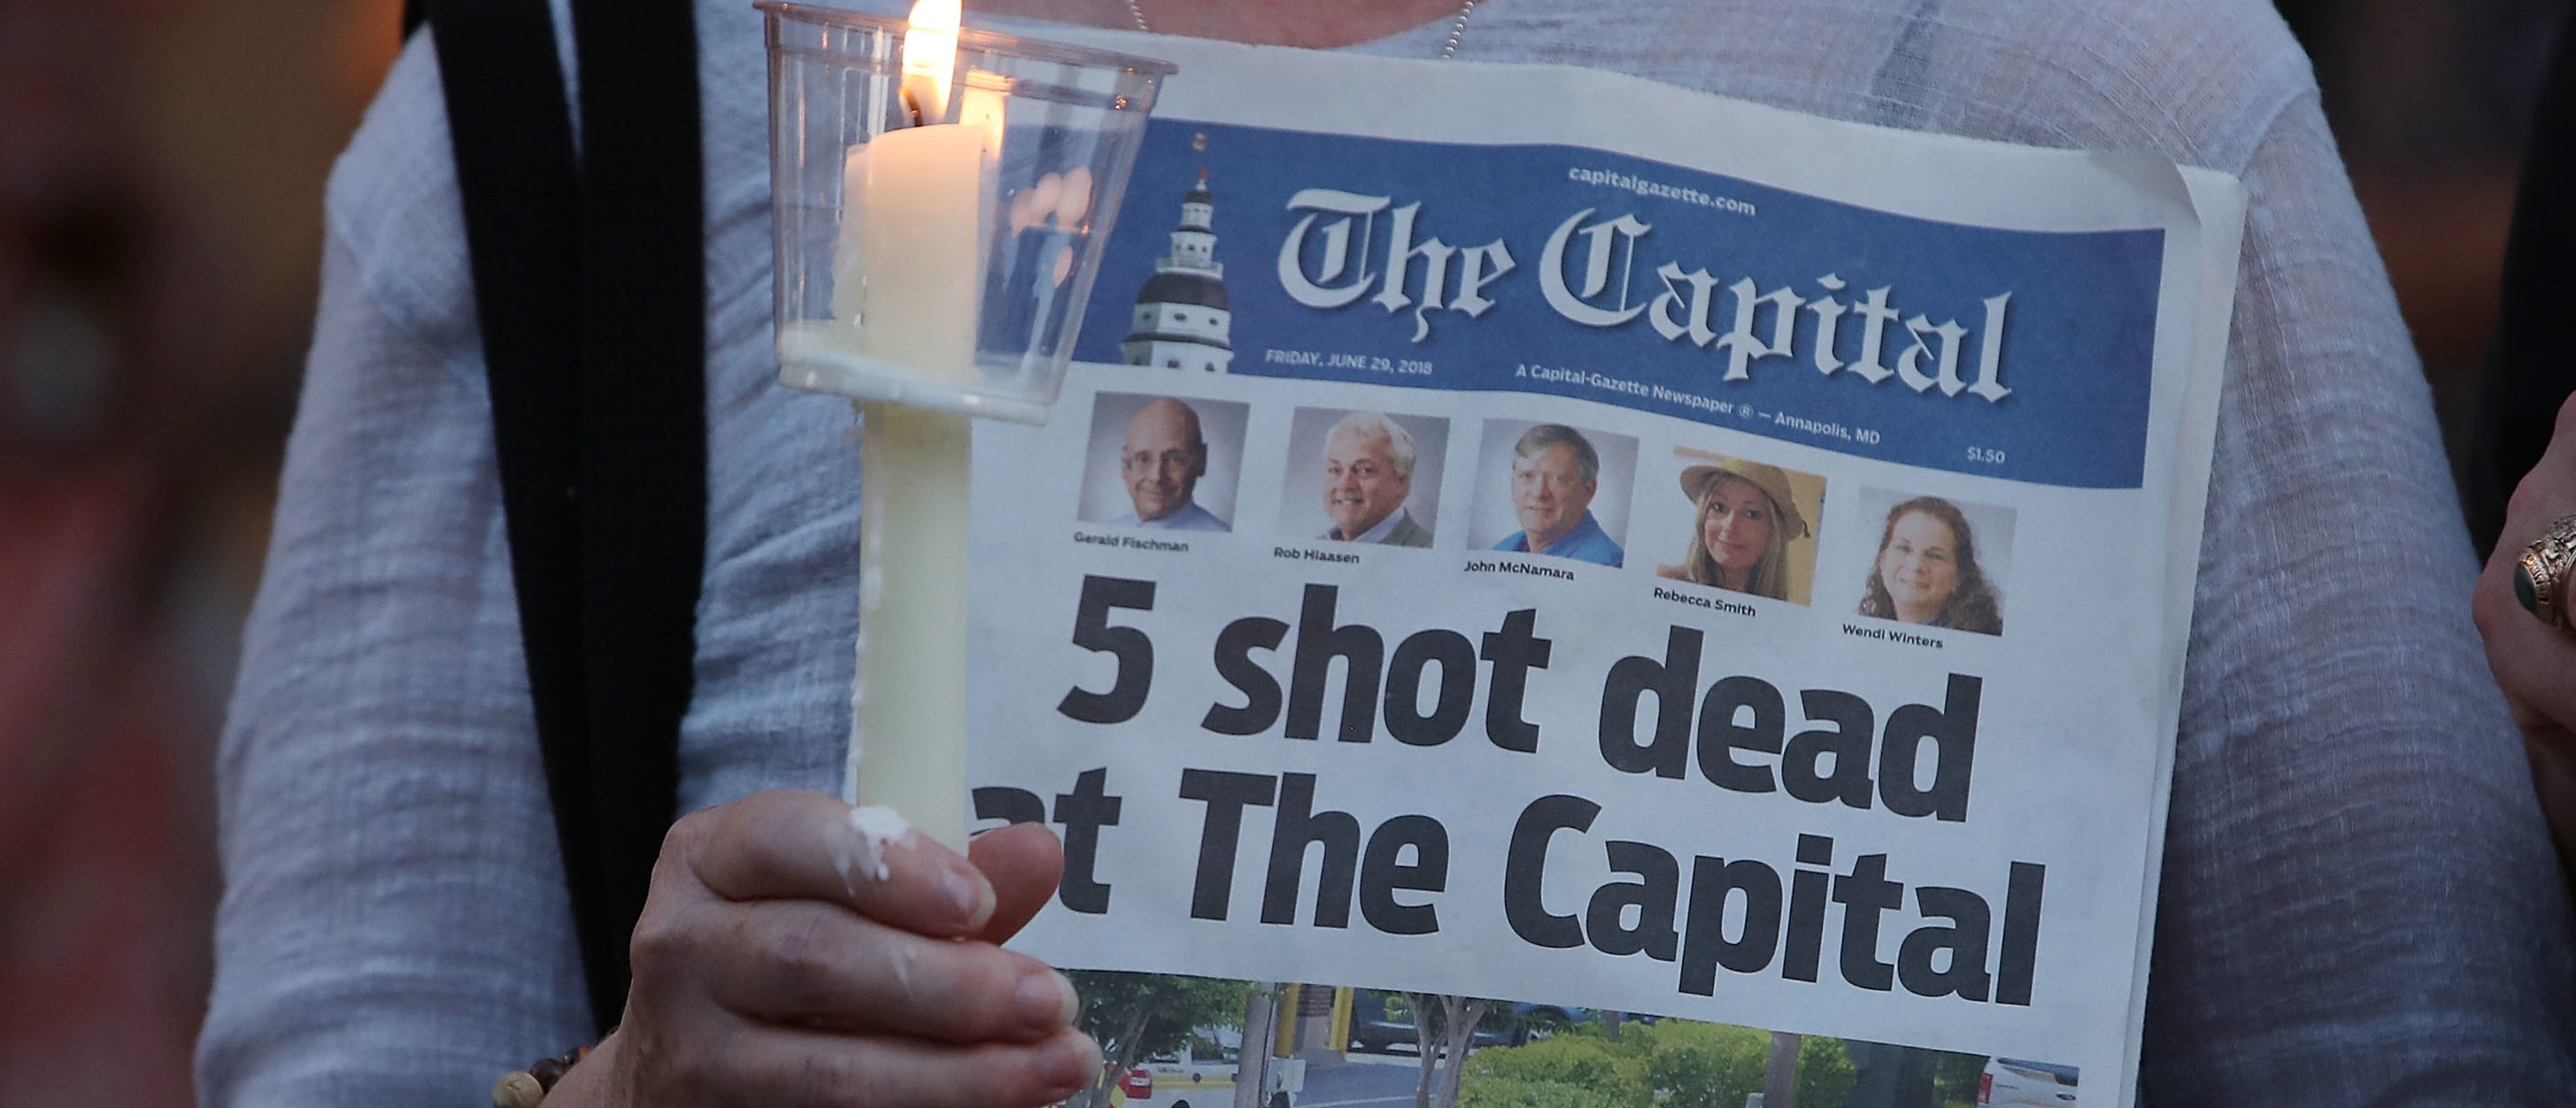 Trump To Lower Flags To Half-Staff After Capital Gazette ...